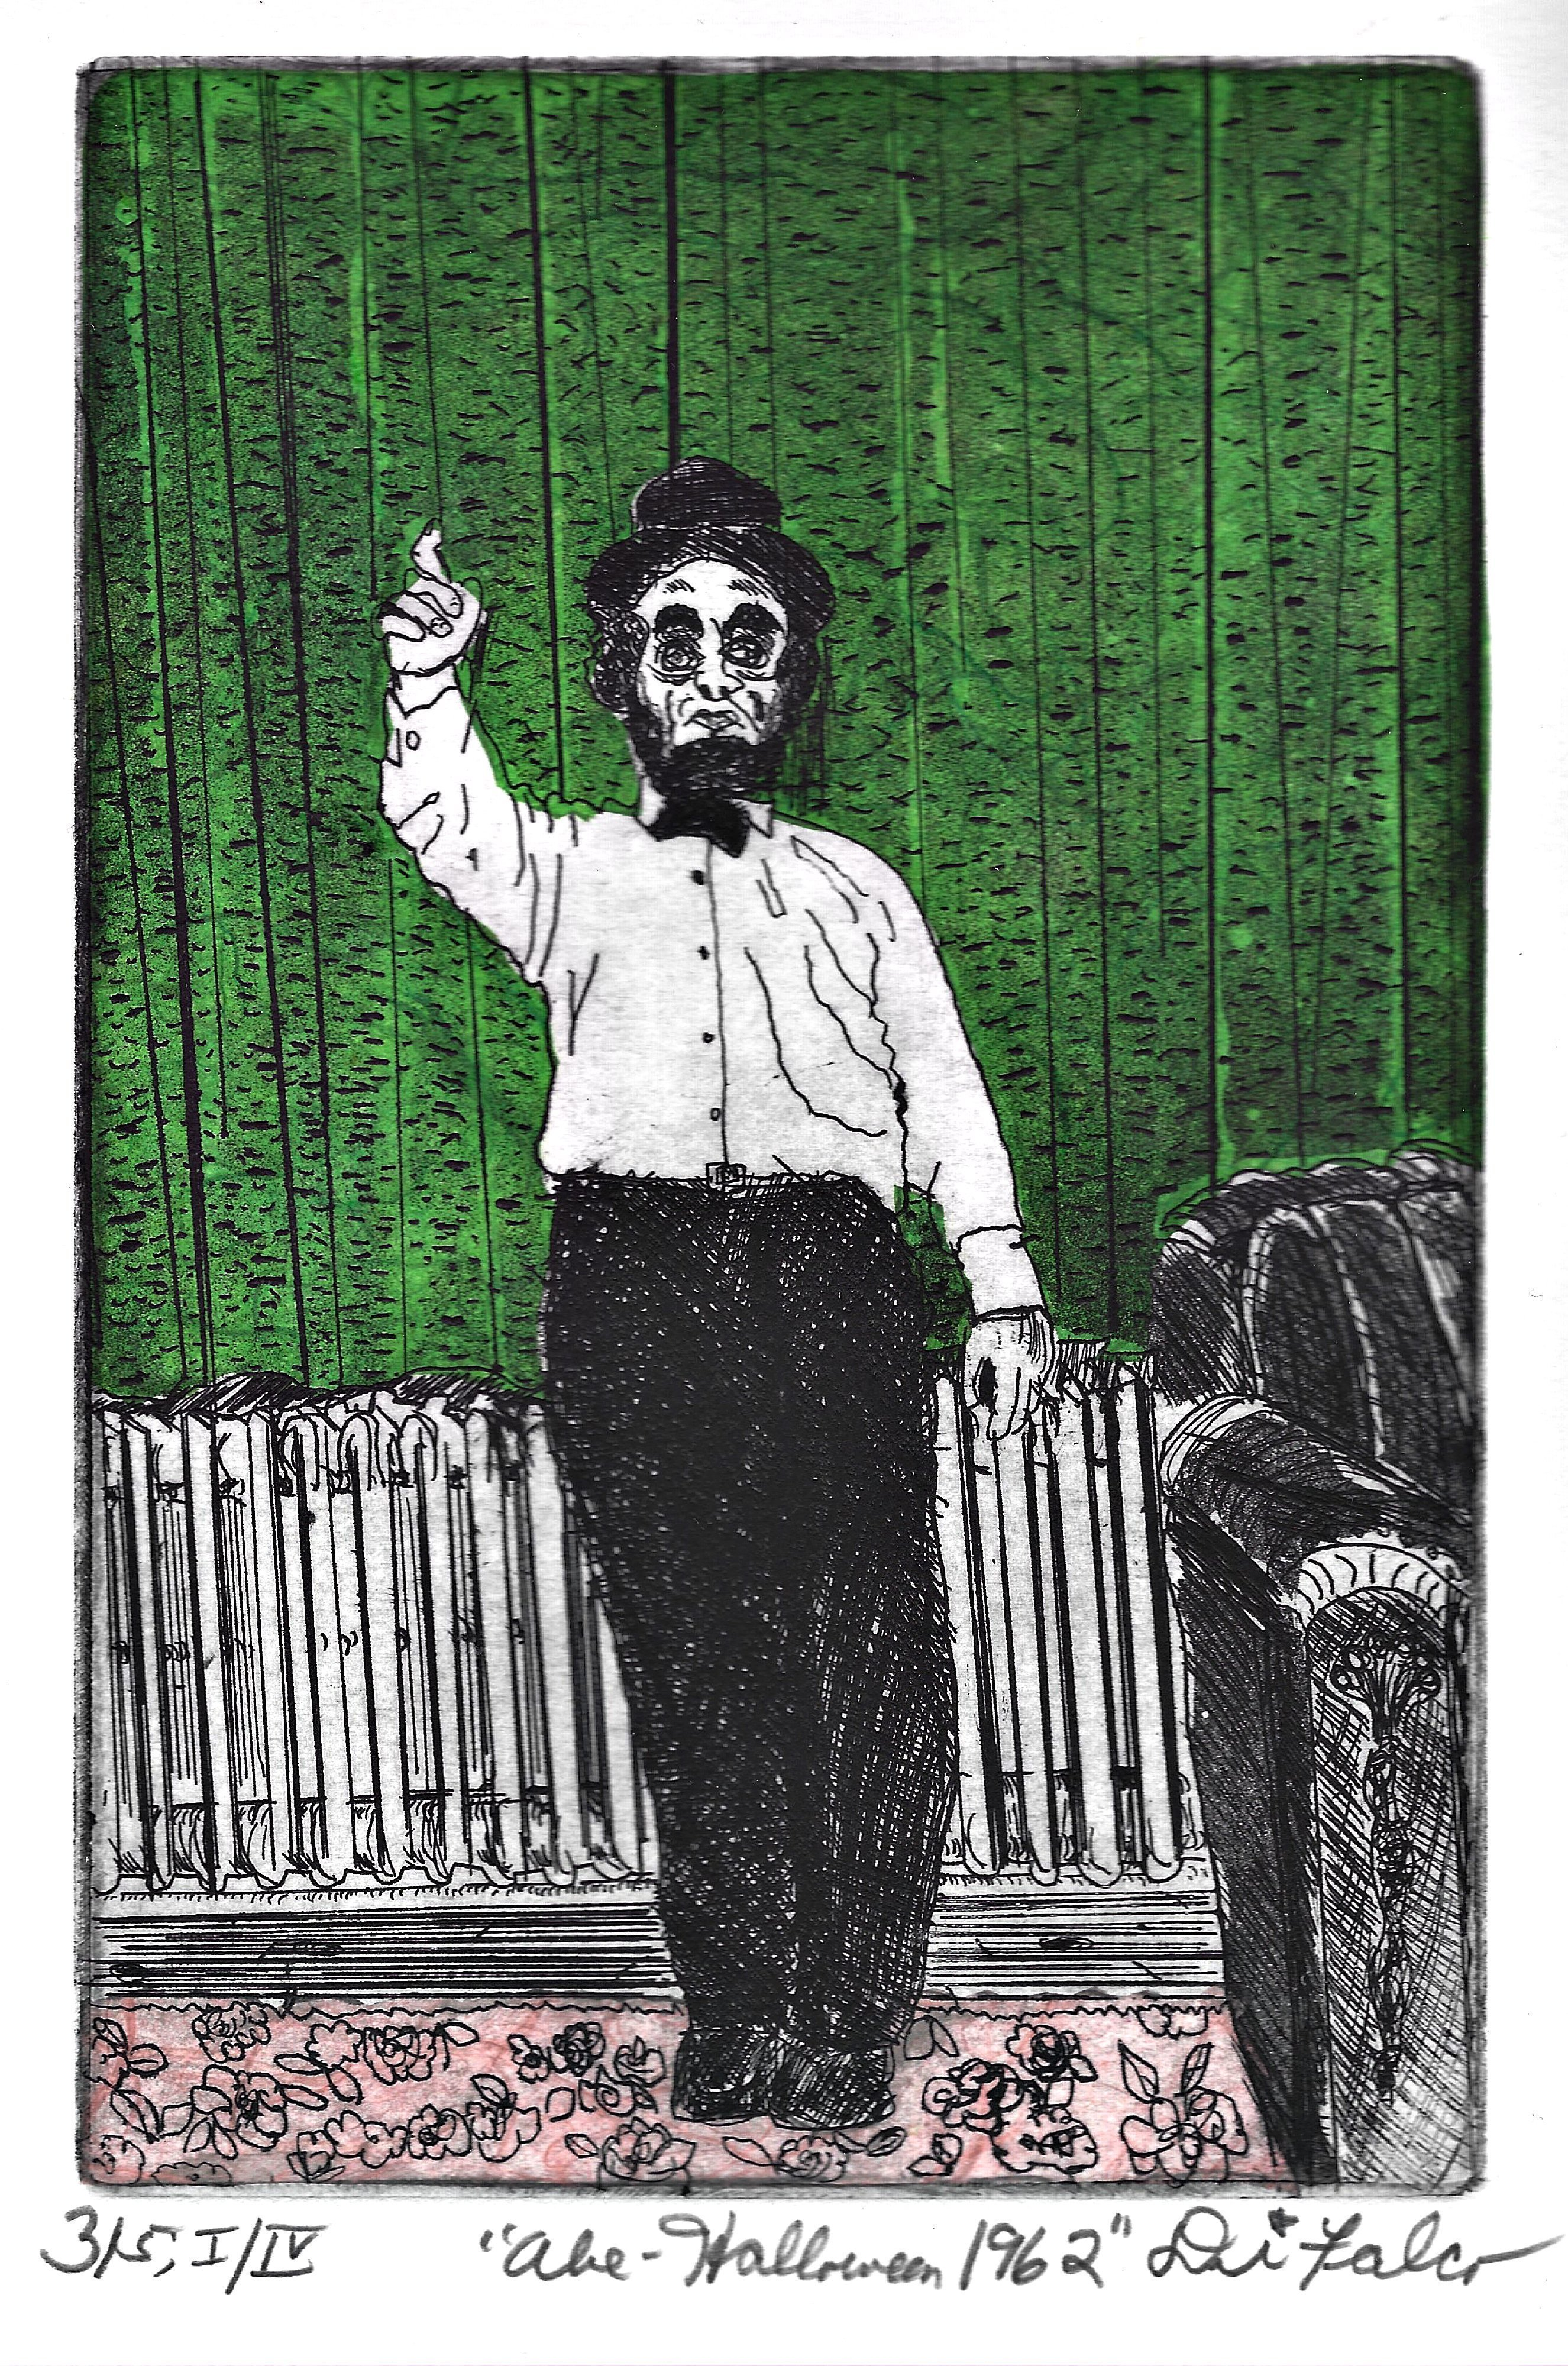 Jerry  Di Falco: 'abe on halloween 1962', 2018 Etching, Cartoon. THE PRICE OF THIS MATTED ETCHING INCLUDES A FRAME THAT MEASURES 16 INCHES HIGH BY 12 INCHES WIDE.  THE PAINTED BLACK WOOD AND GLASS FRAME INCLUDES AN ACID FREE, WHITE MAT WITH BLACK INNER BORDER.  MOREOVER, THE ARTWORK ARRIVES WIRED AND READY TO HANG ON YOUR WALL.  This etching is ...